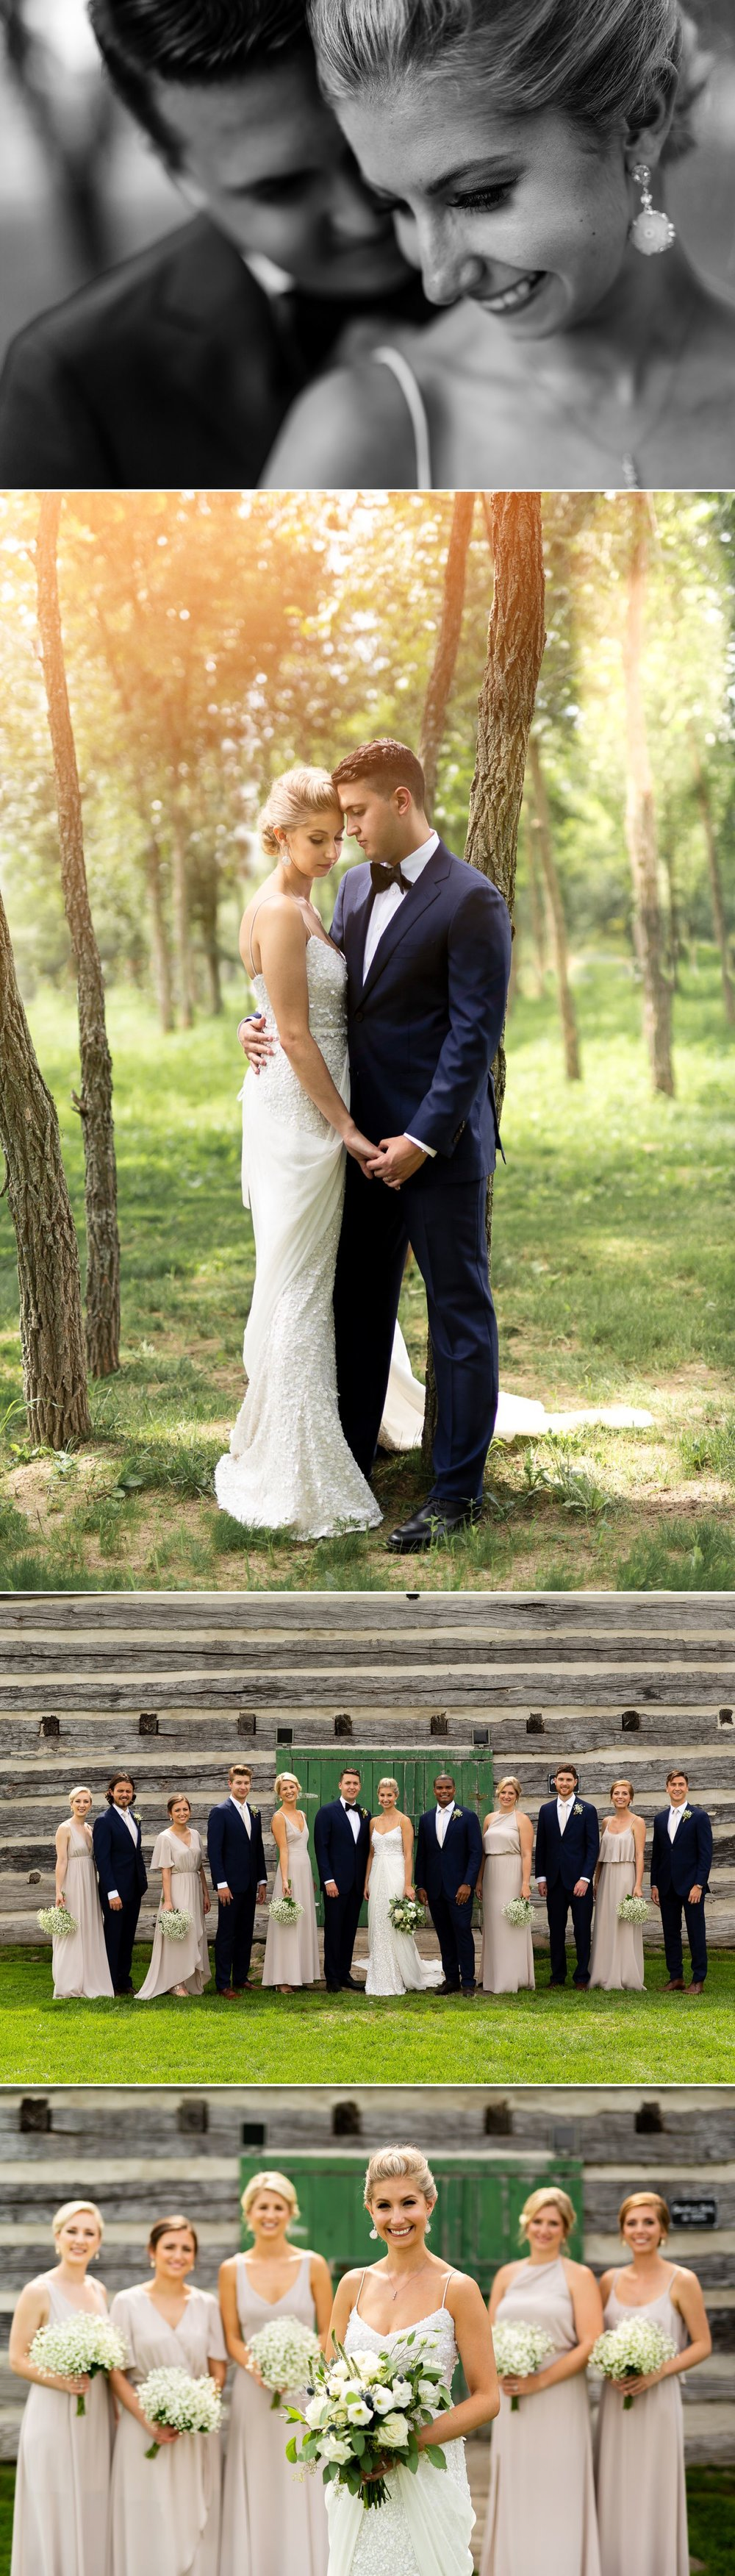 Portraits of the bride and groom before their ceremony at Stonefields Estate